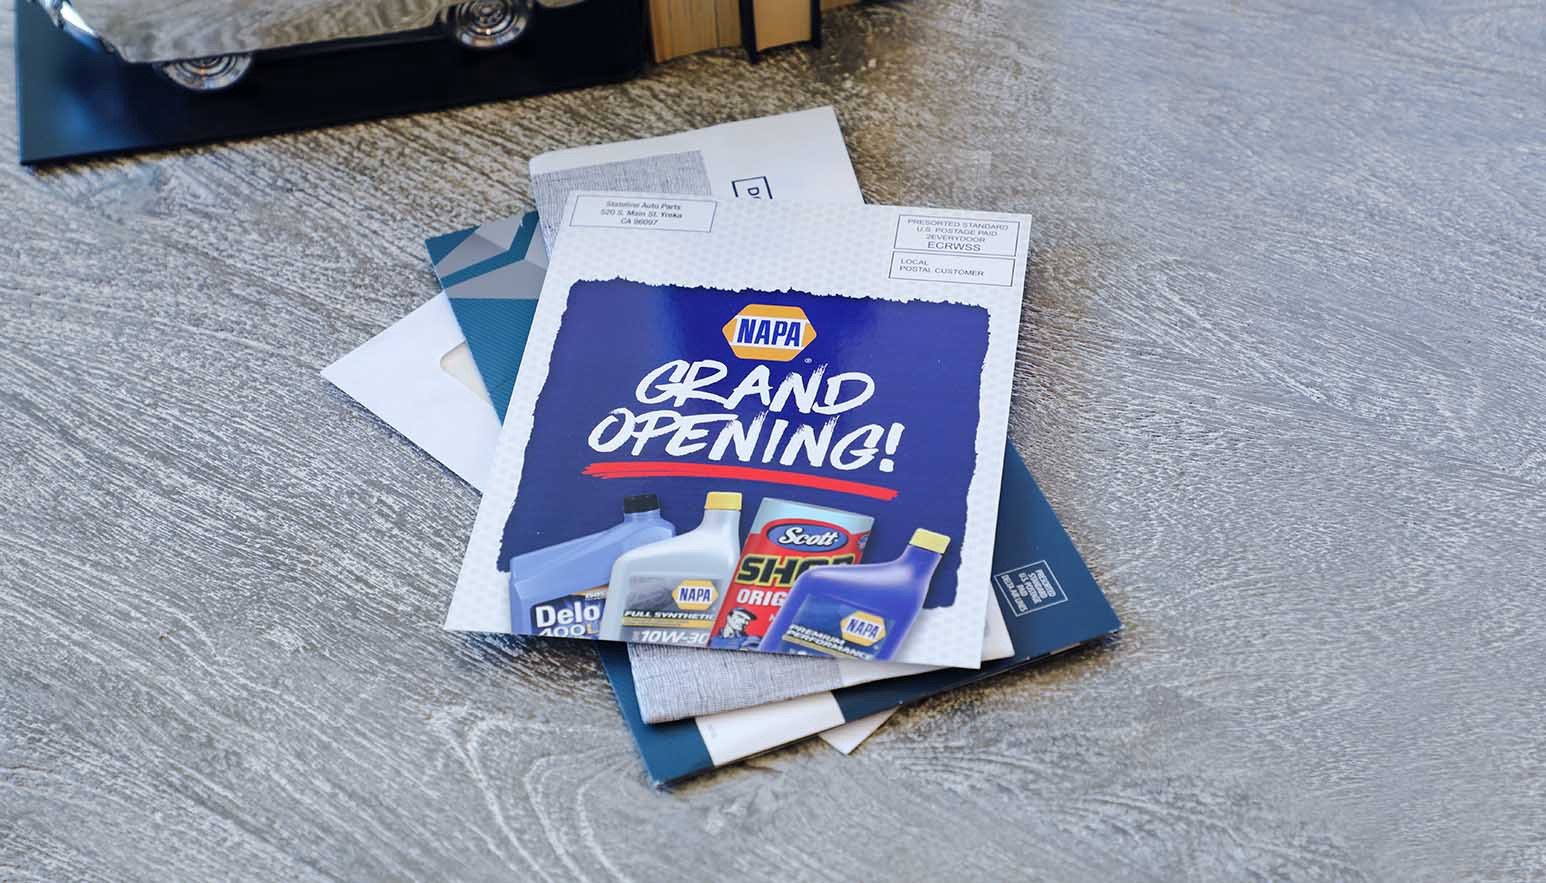 Printing EDDM® postcards is a cost-effective mail solution that enables you to geographically target neighborhoods that can potentially include the ideal customers for your business.